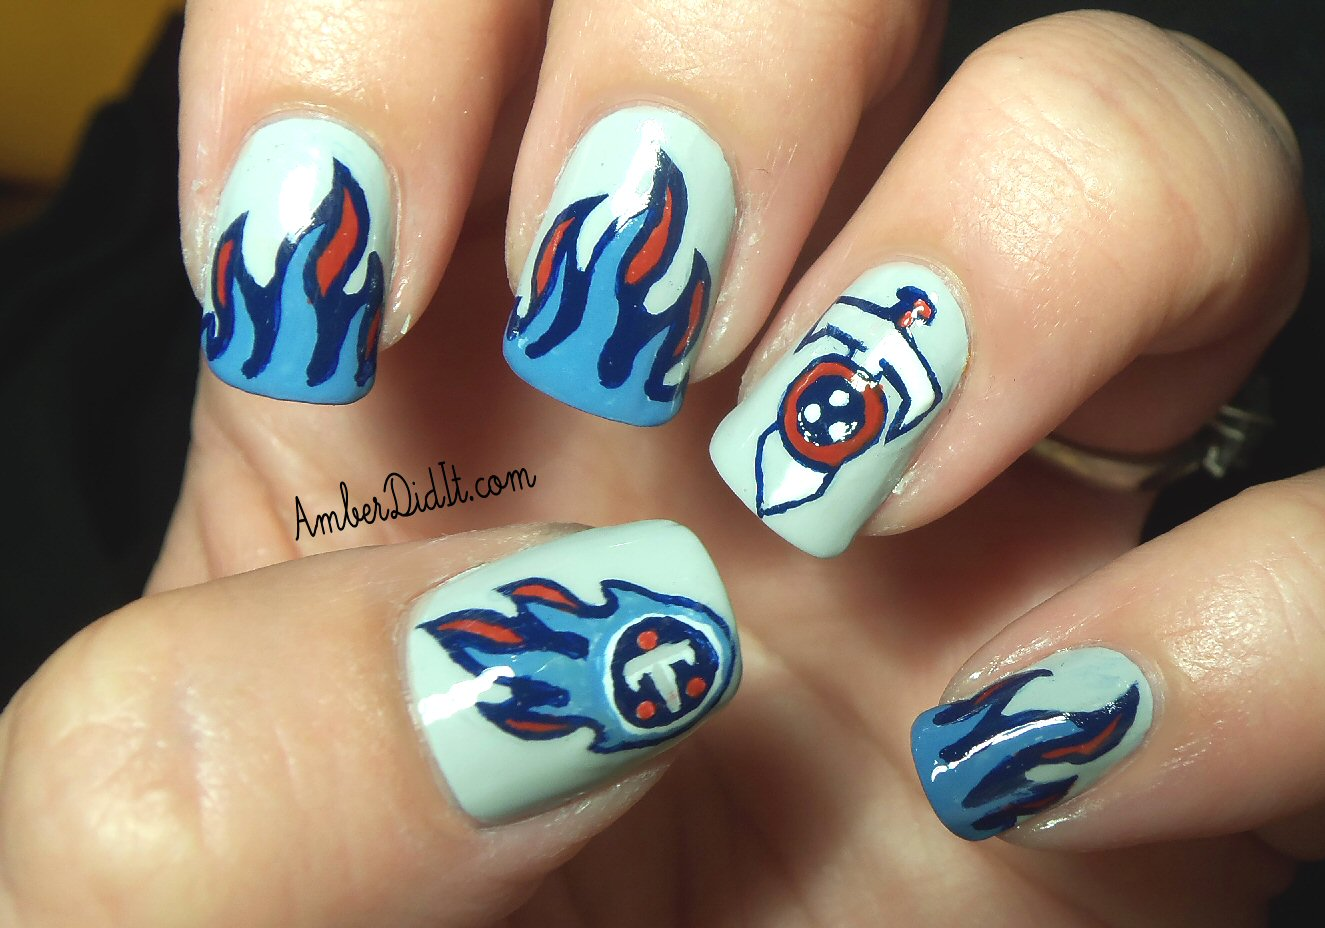 Amber did it!: NFL Nail Art Series #7 ~ Tennessee Titans